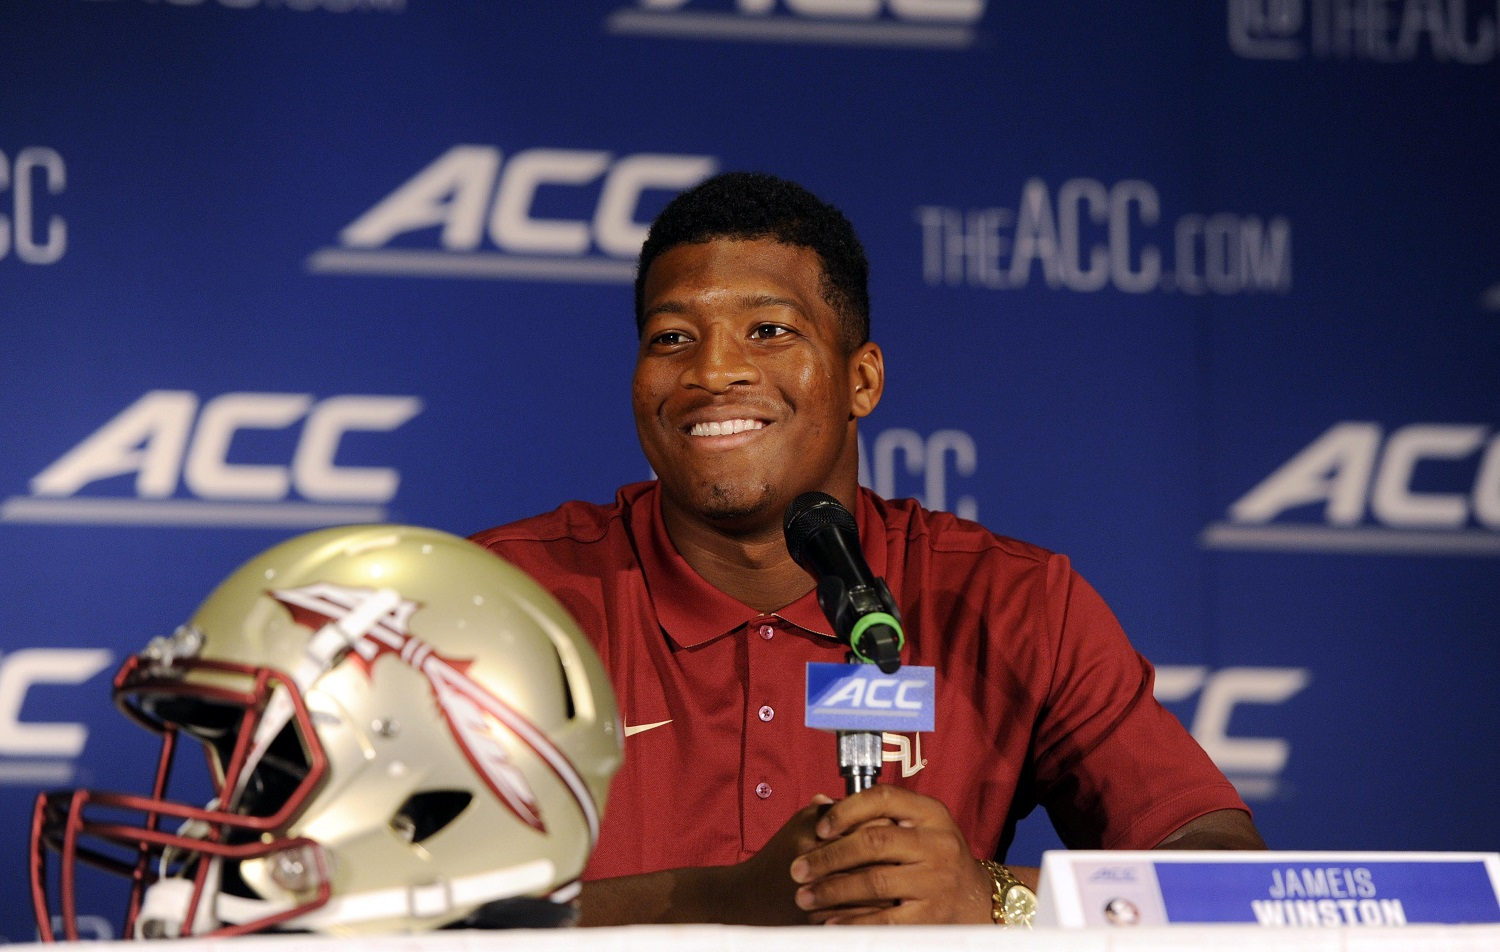 Florida State quarterback Jameis Winston discusses his eventful offseason and satisfaction that the ACC claimed the national title from the SEC.